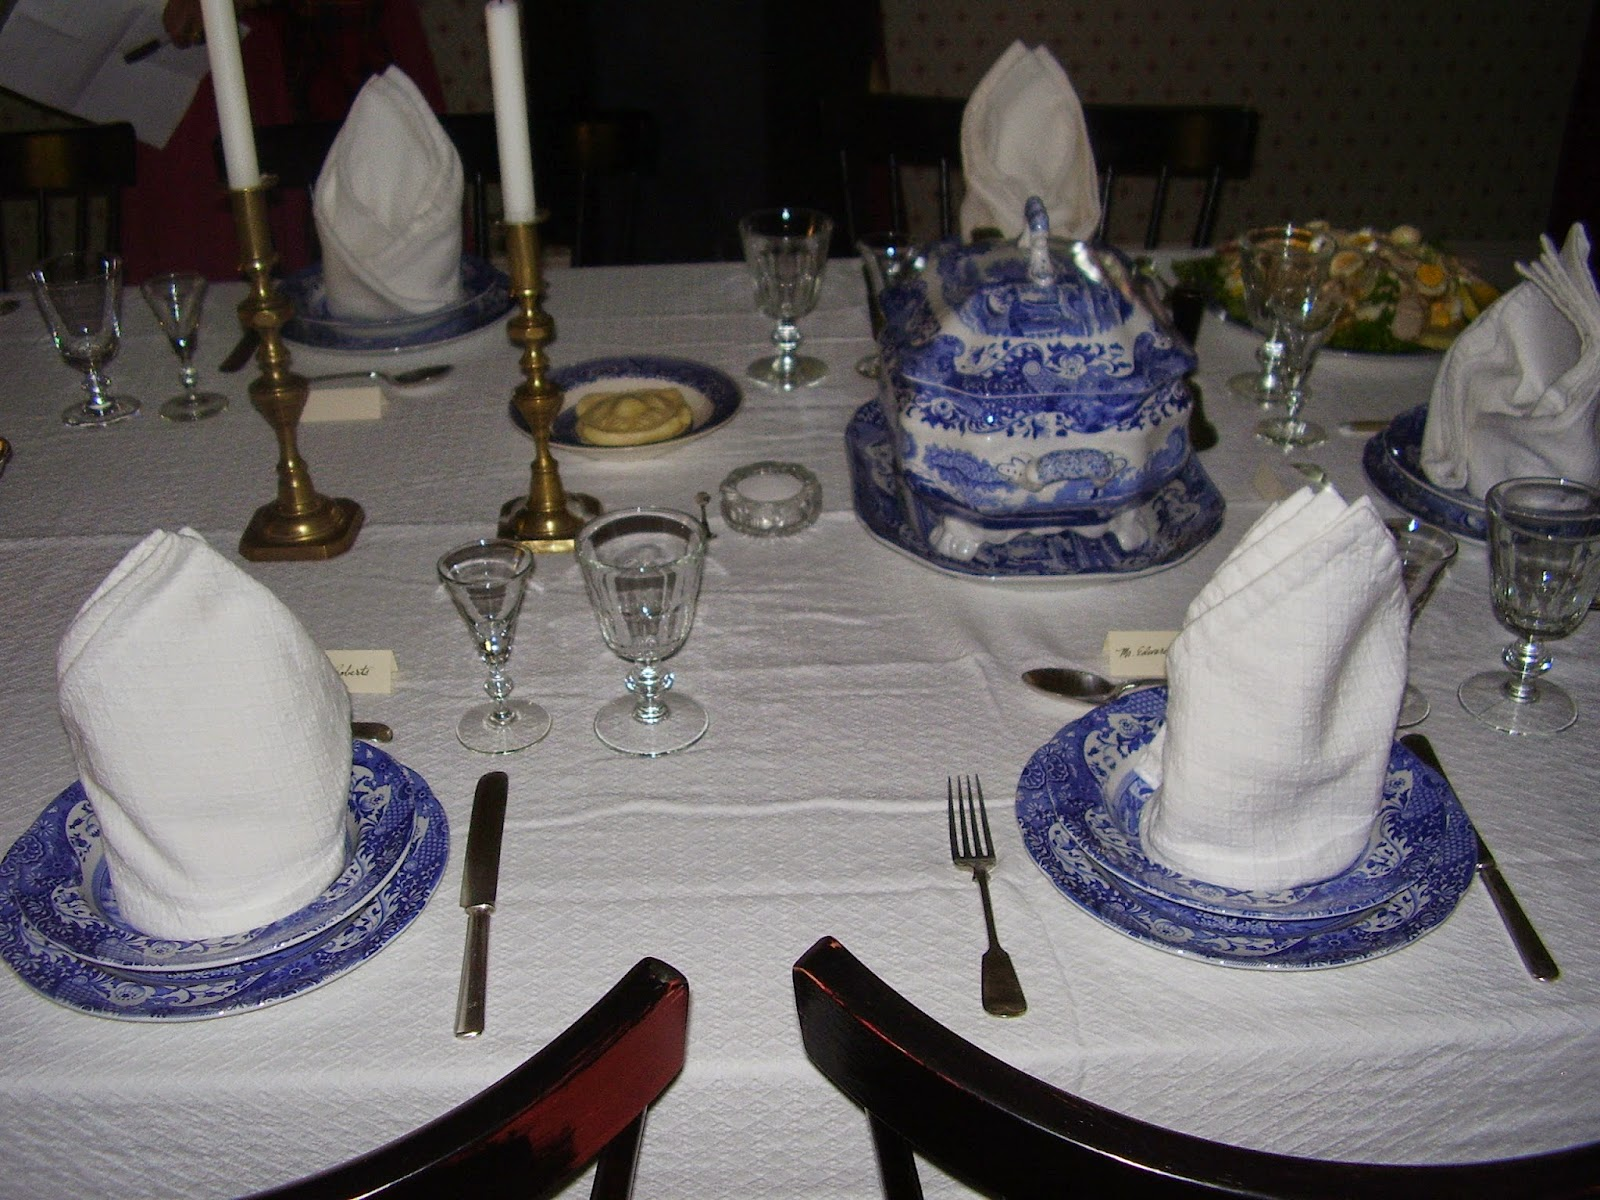 Blue Italian place settings and soup tureen; candlesticks.